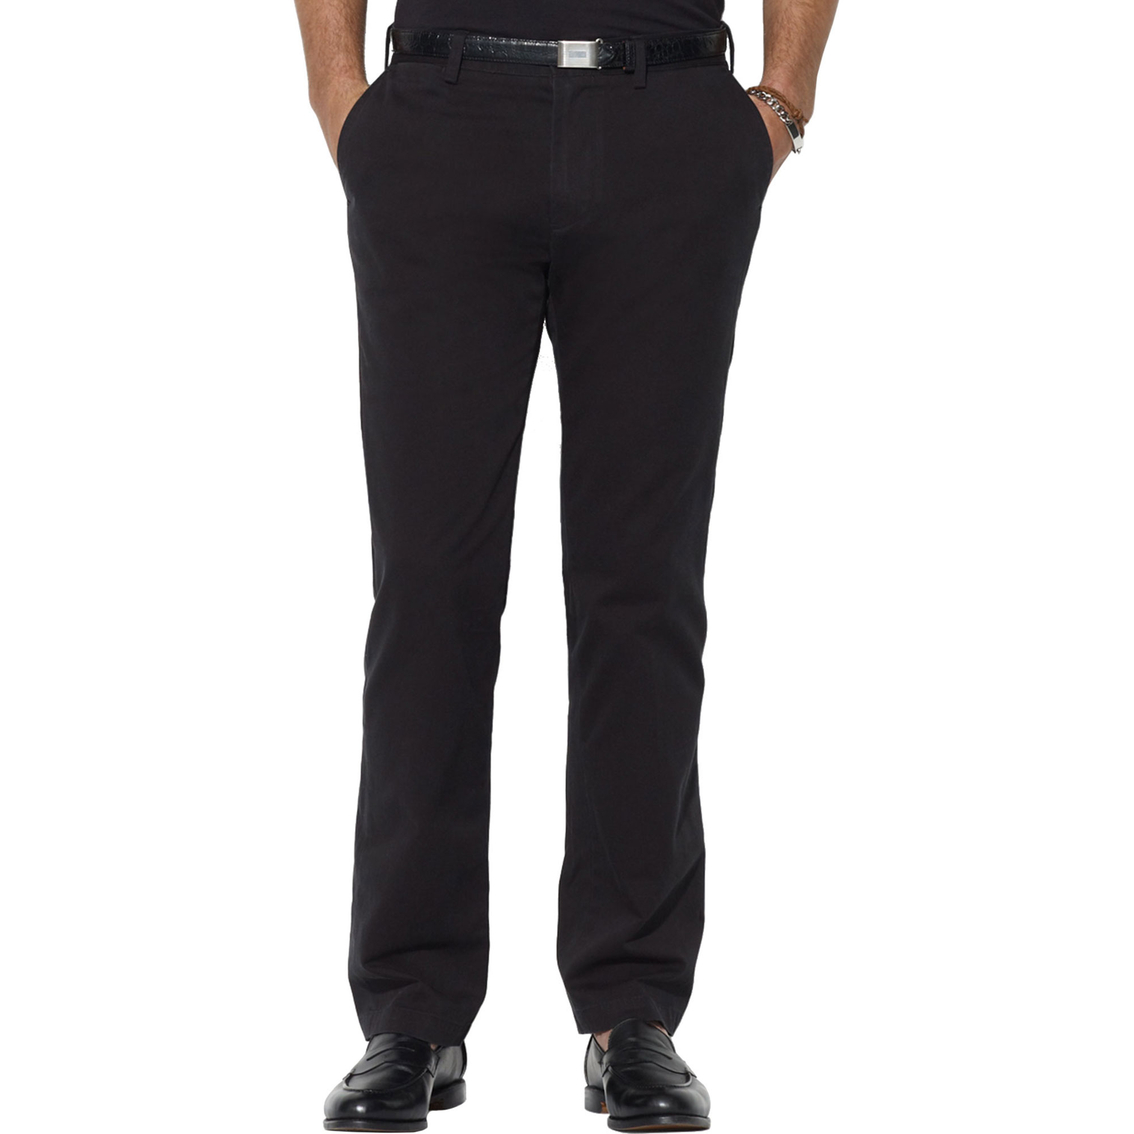 09f3981c548f2b Polo Ralph Lauren Straight Fit 5 Pocket Chino Pants | Polo Ralph ...